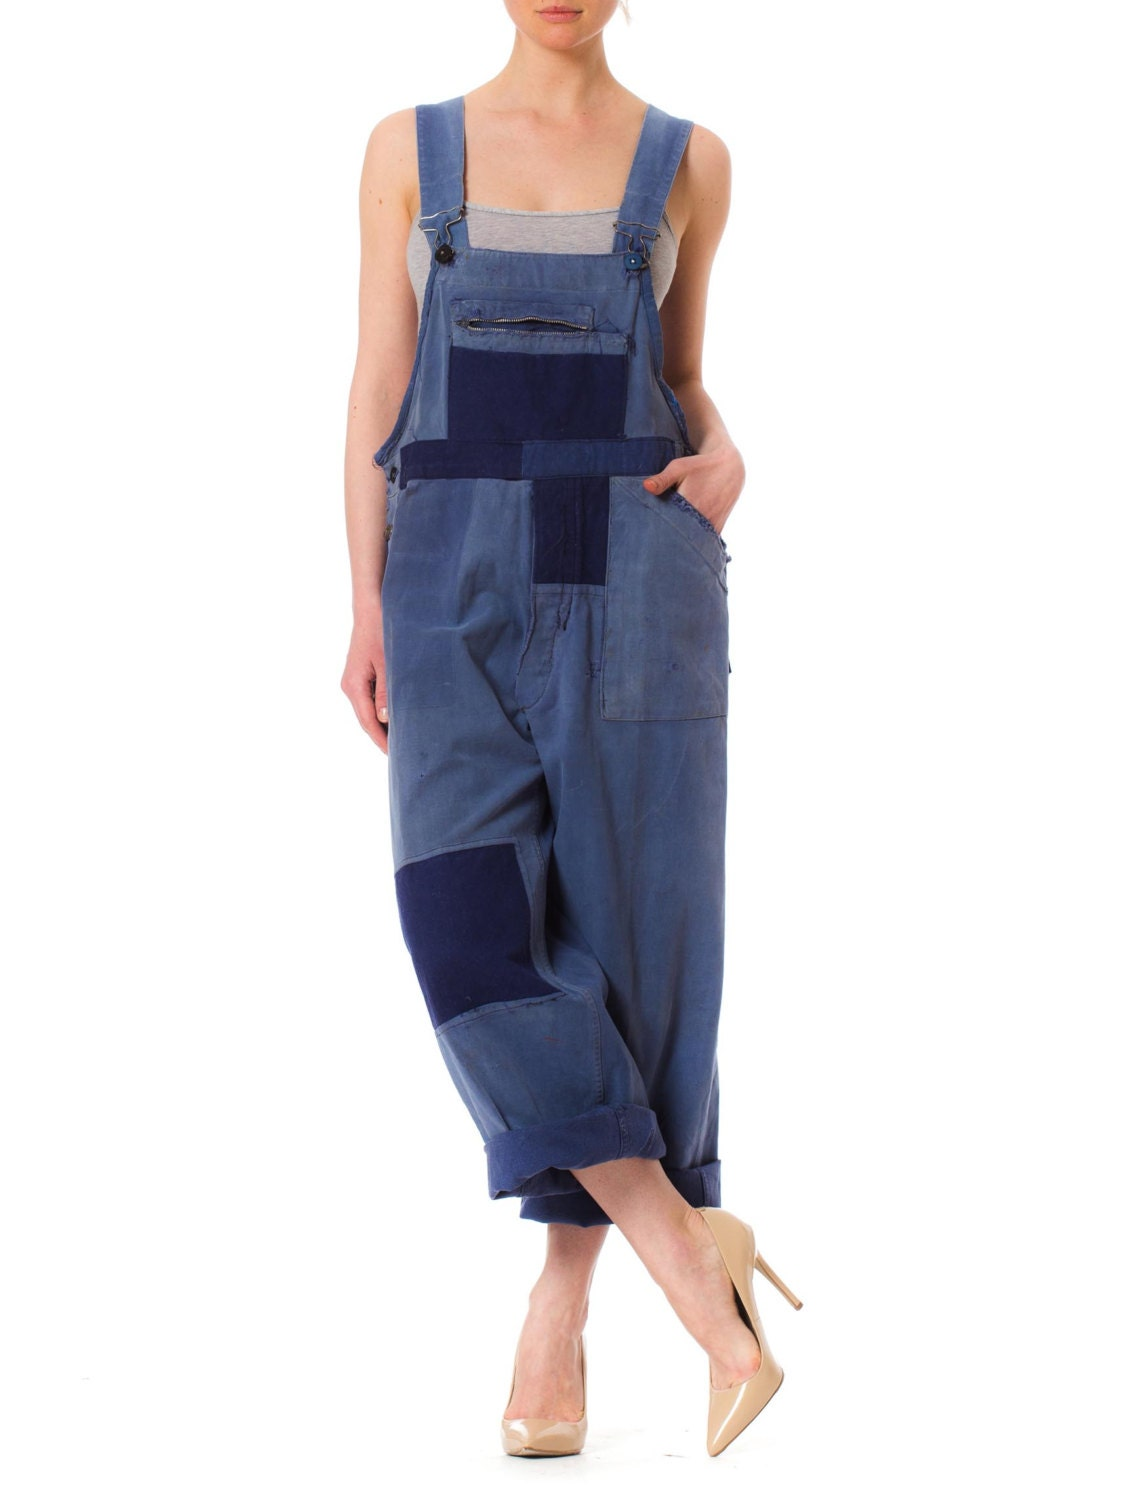 New 1930s Mens Fashion Ties 1930S Blue Cotton Mens Heavily Distressed Patchwork French Workwear Overalls $70.00 AT vintagedancer.com